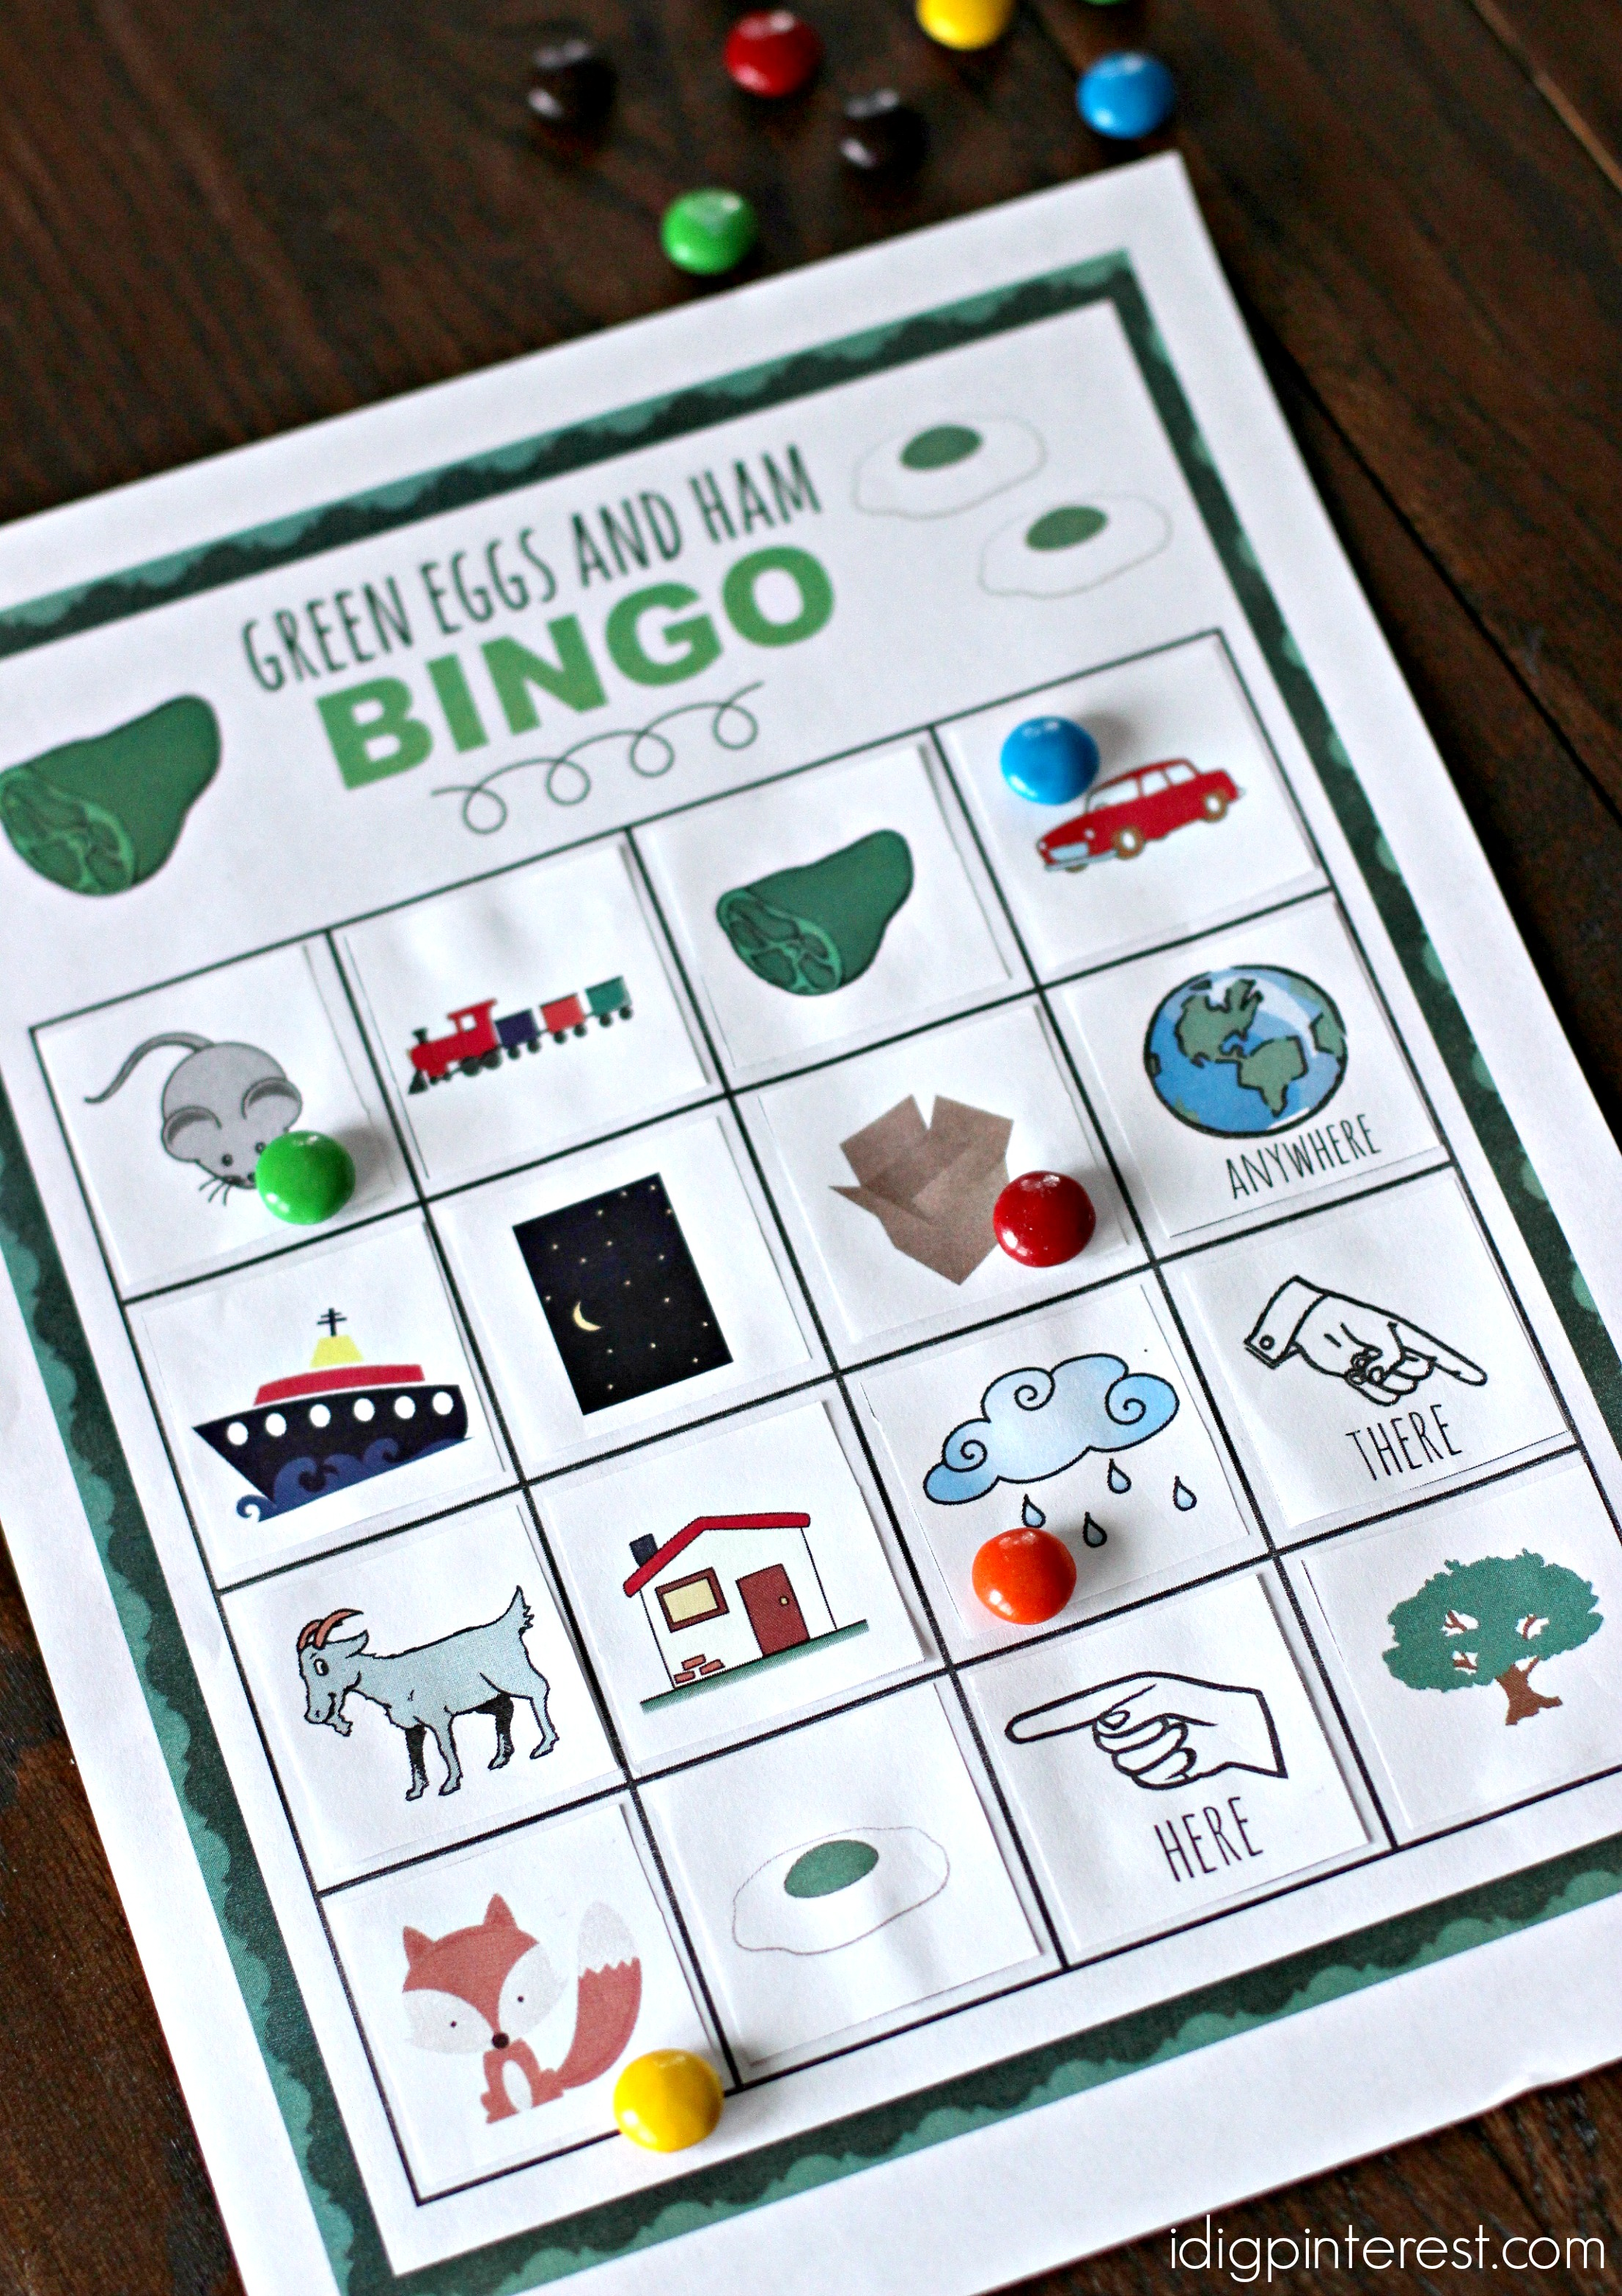 photo relating to Green Eggs and Ham Printable referred to as Dr. Seuss Inexperienced Eggs and Ham Bingo - I Dig Pinterest